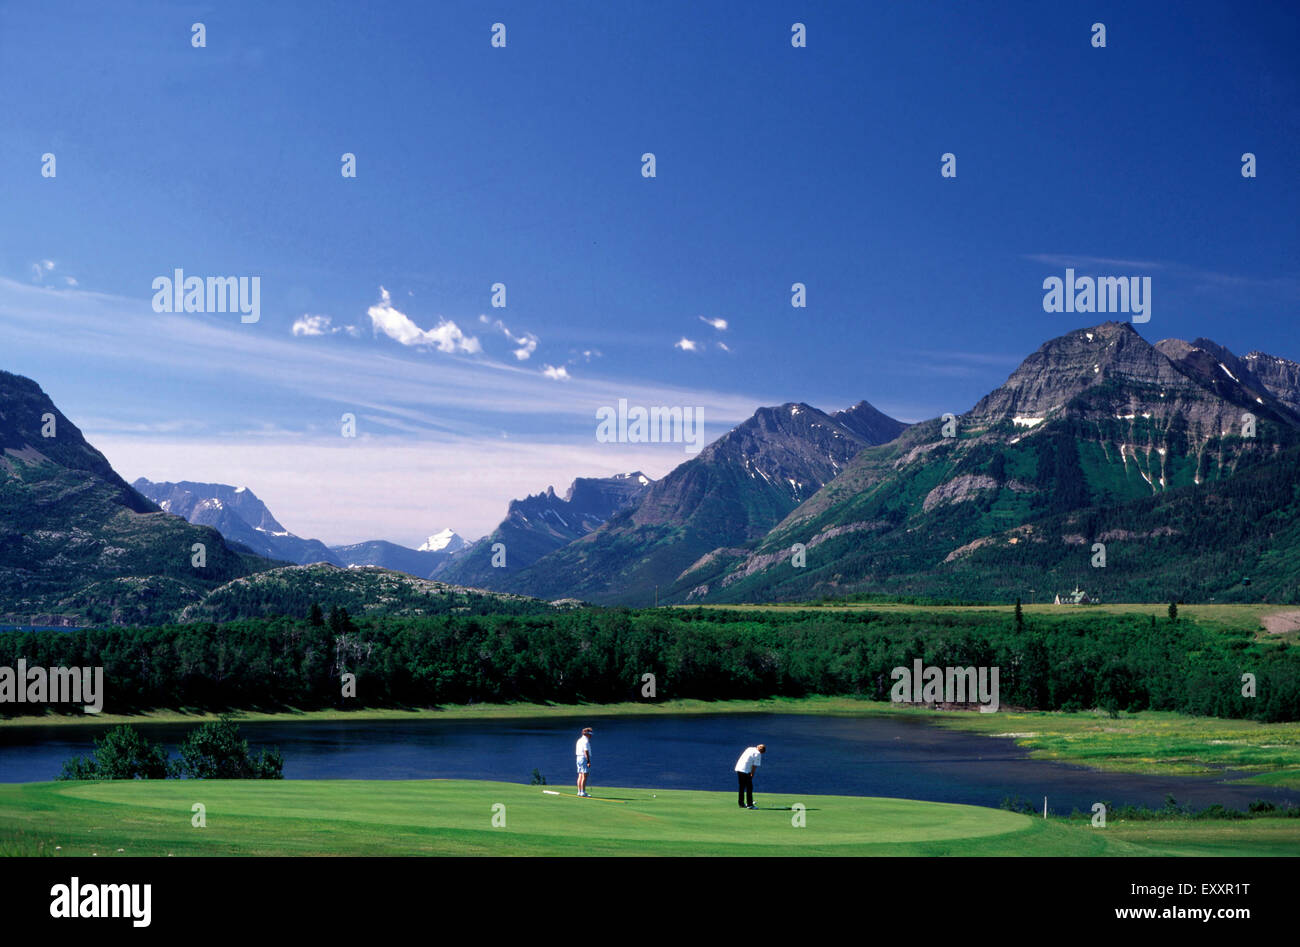 Golfing at the Prince of Wales Hotel,Waterton National Park,Alberta - Stock Image